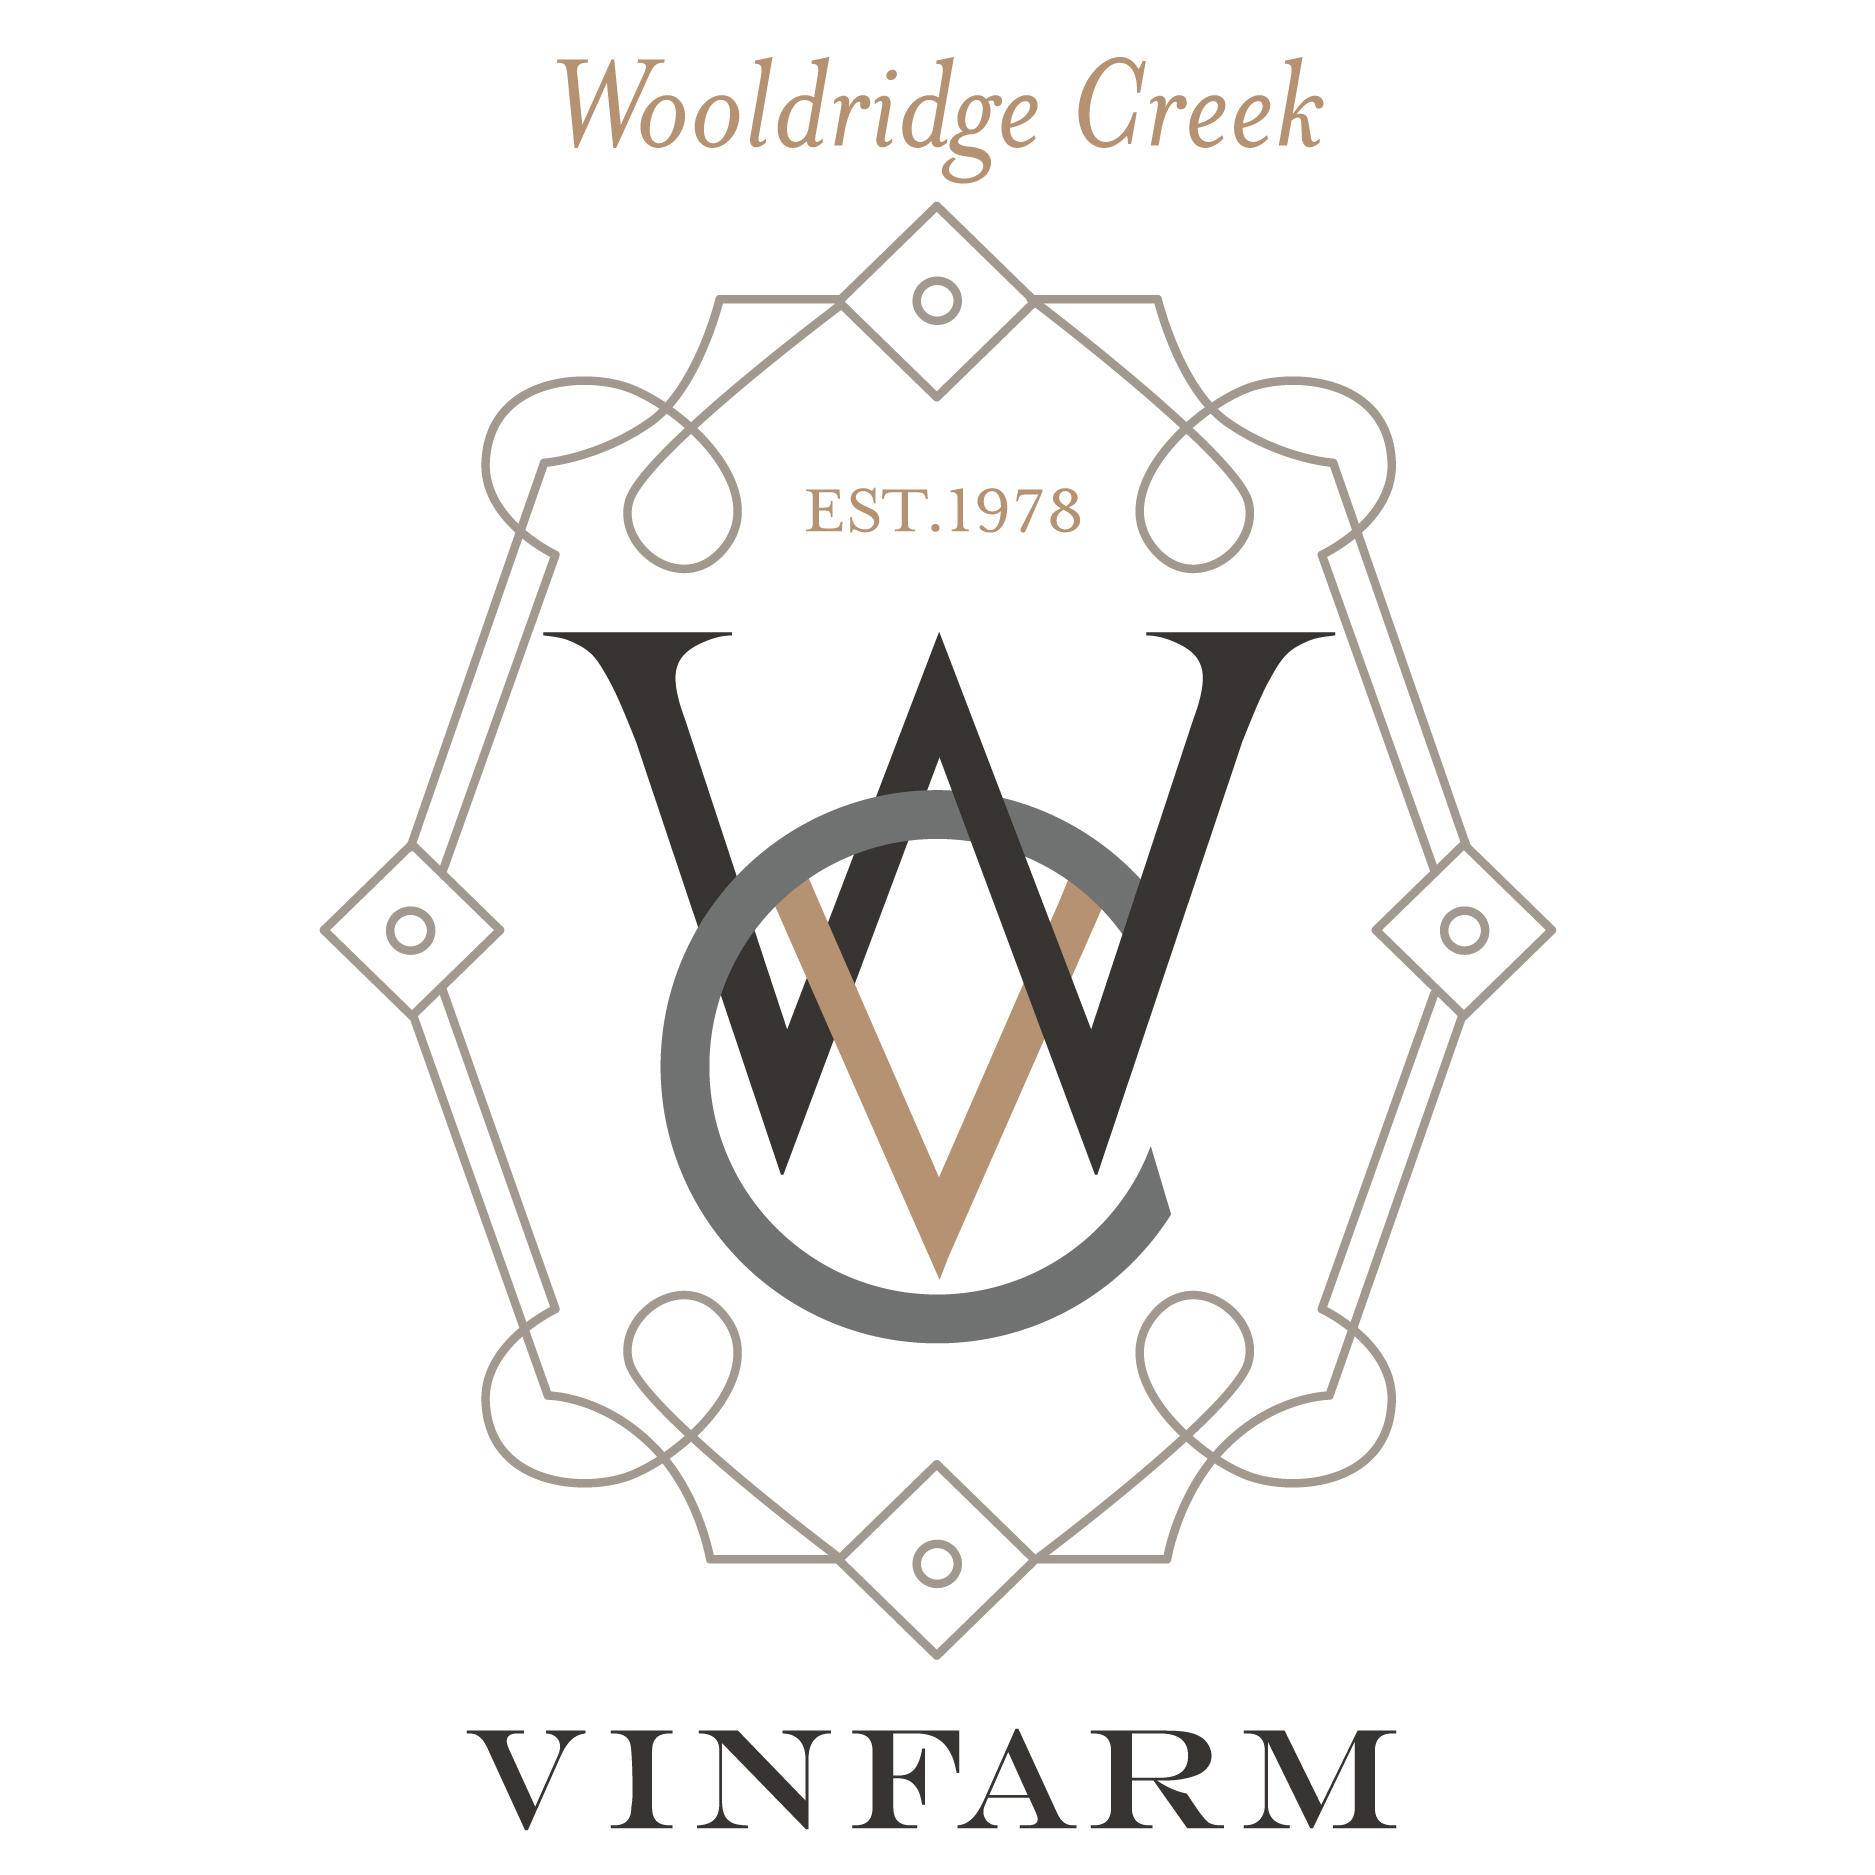 Woolridge Creek Identity